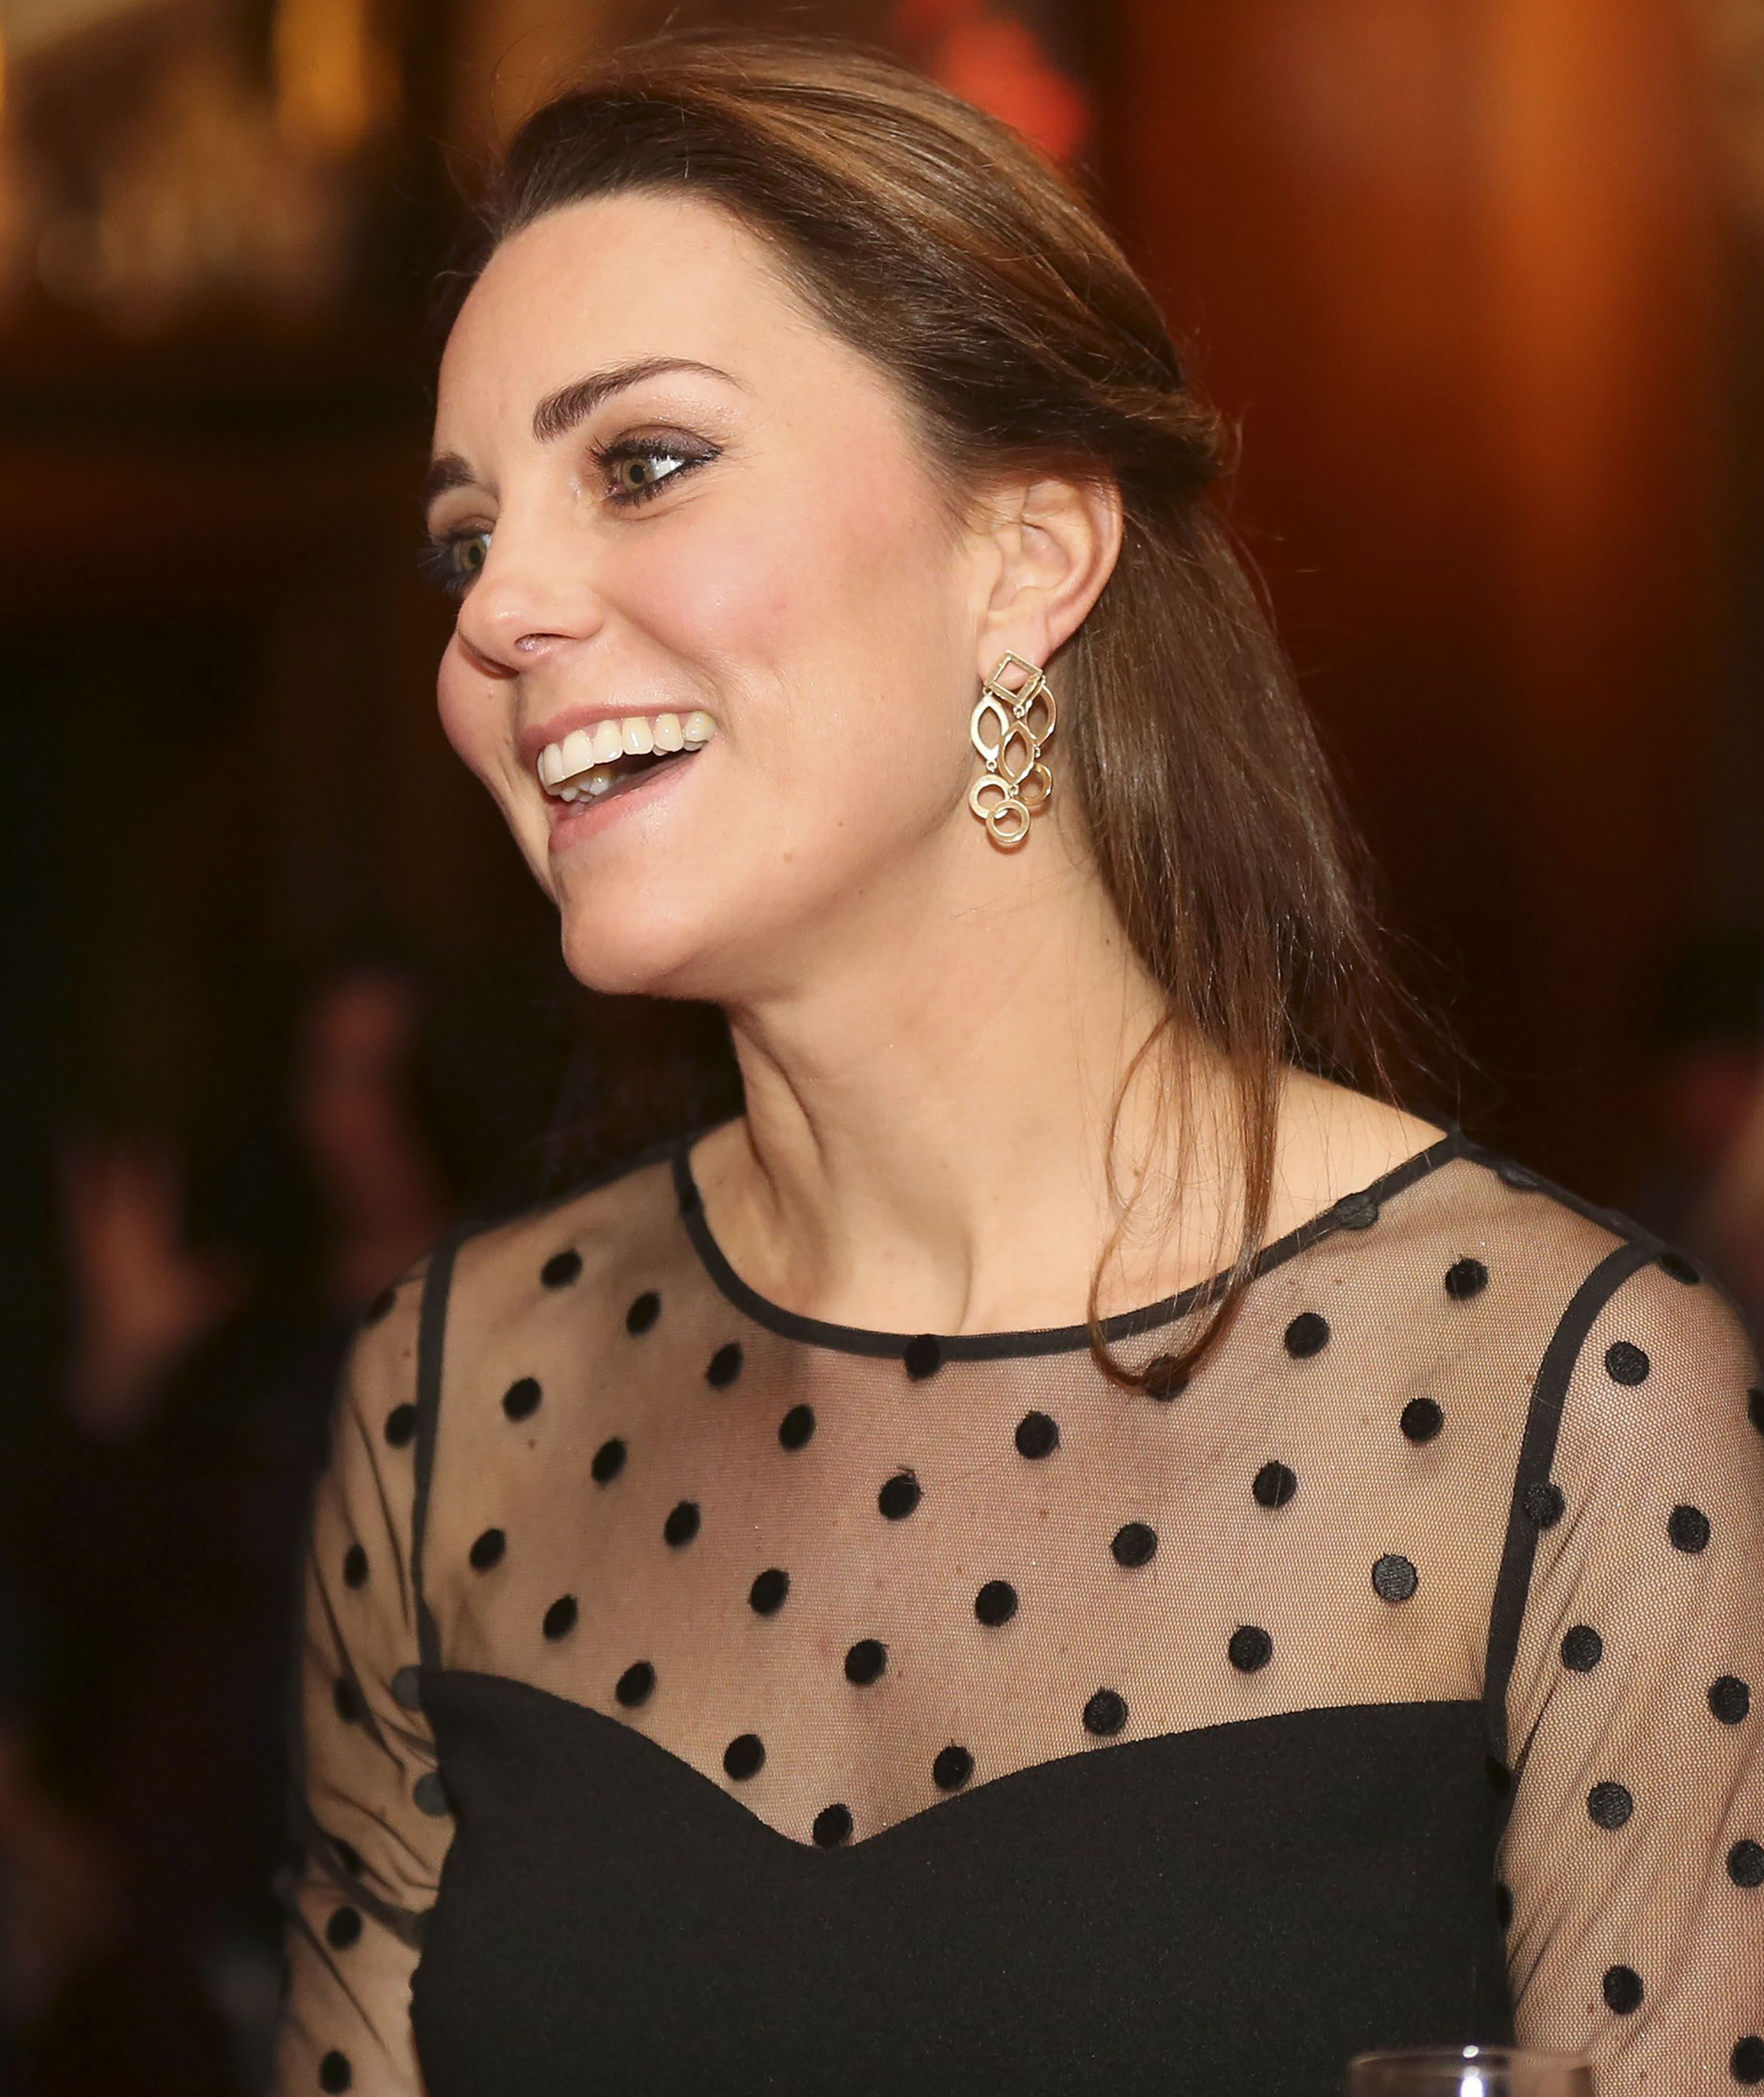 Catherine, Duchess of Cambridge attends the Place2be Wellbeing in Schools Award at Kensington Palace, in London on Nov. 19 2014.